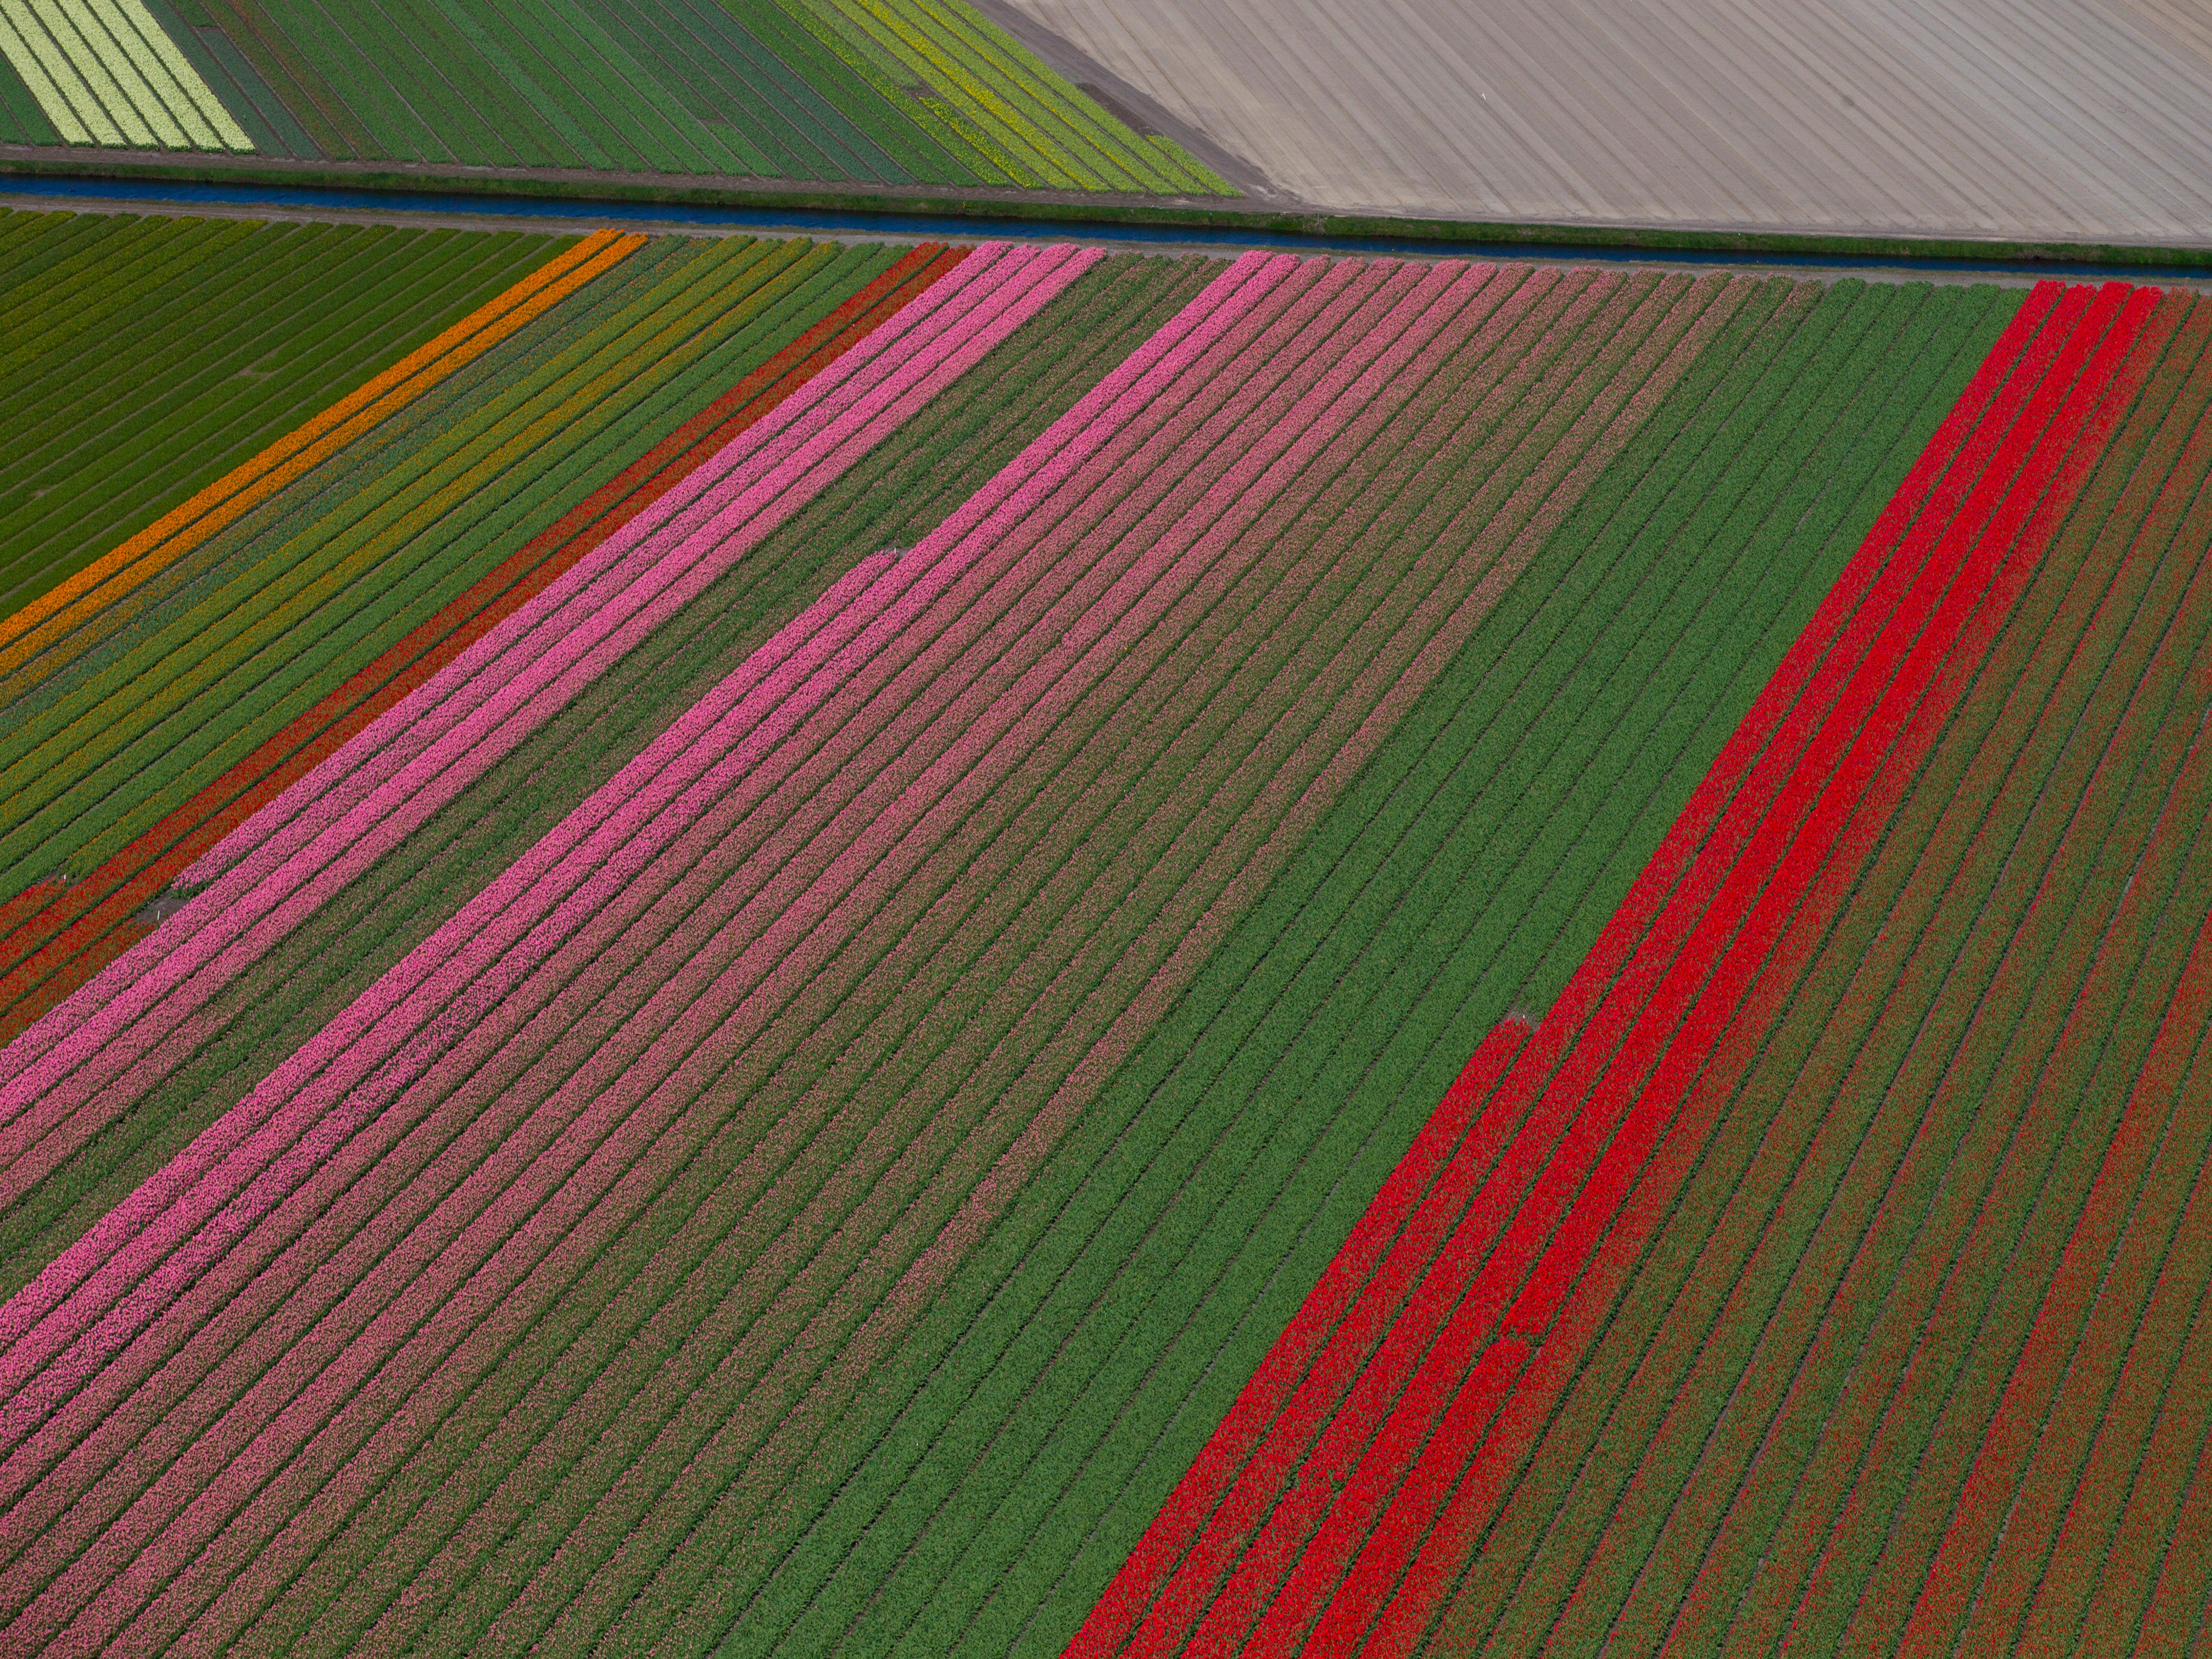 """This is an aerial view of flower fields surrounding the Keukenhof spring park in Lisse, near Amsterdam, Netherlands, Wednesday, April 10, 2019. For years, the Dutch agriculture, horticulture and logistics industries have been refined to swiftly deliver their produce to customers in the United Kingdom. The so-called """"hard"""" Brexit could seriously impact the supply chain with delays expected at British and European ports if Britain leaves the EU without a deal. An emergency summit in Brussels, on Tuesday, was considering Britain's request for a further delay in leaving the EU. Keukenhof attracts around 1 million visitors from all over the world in the eight weeks it is open and showcases 7 million bulb flowers that bloom in spring promoting one of the Netherlands' best-known export products. The 19th of May is the last day Keukenhof is open to the public."""